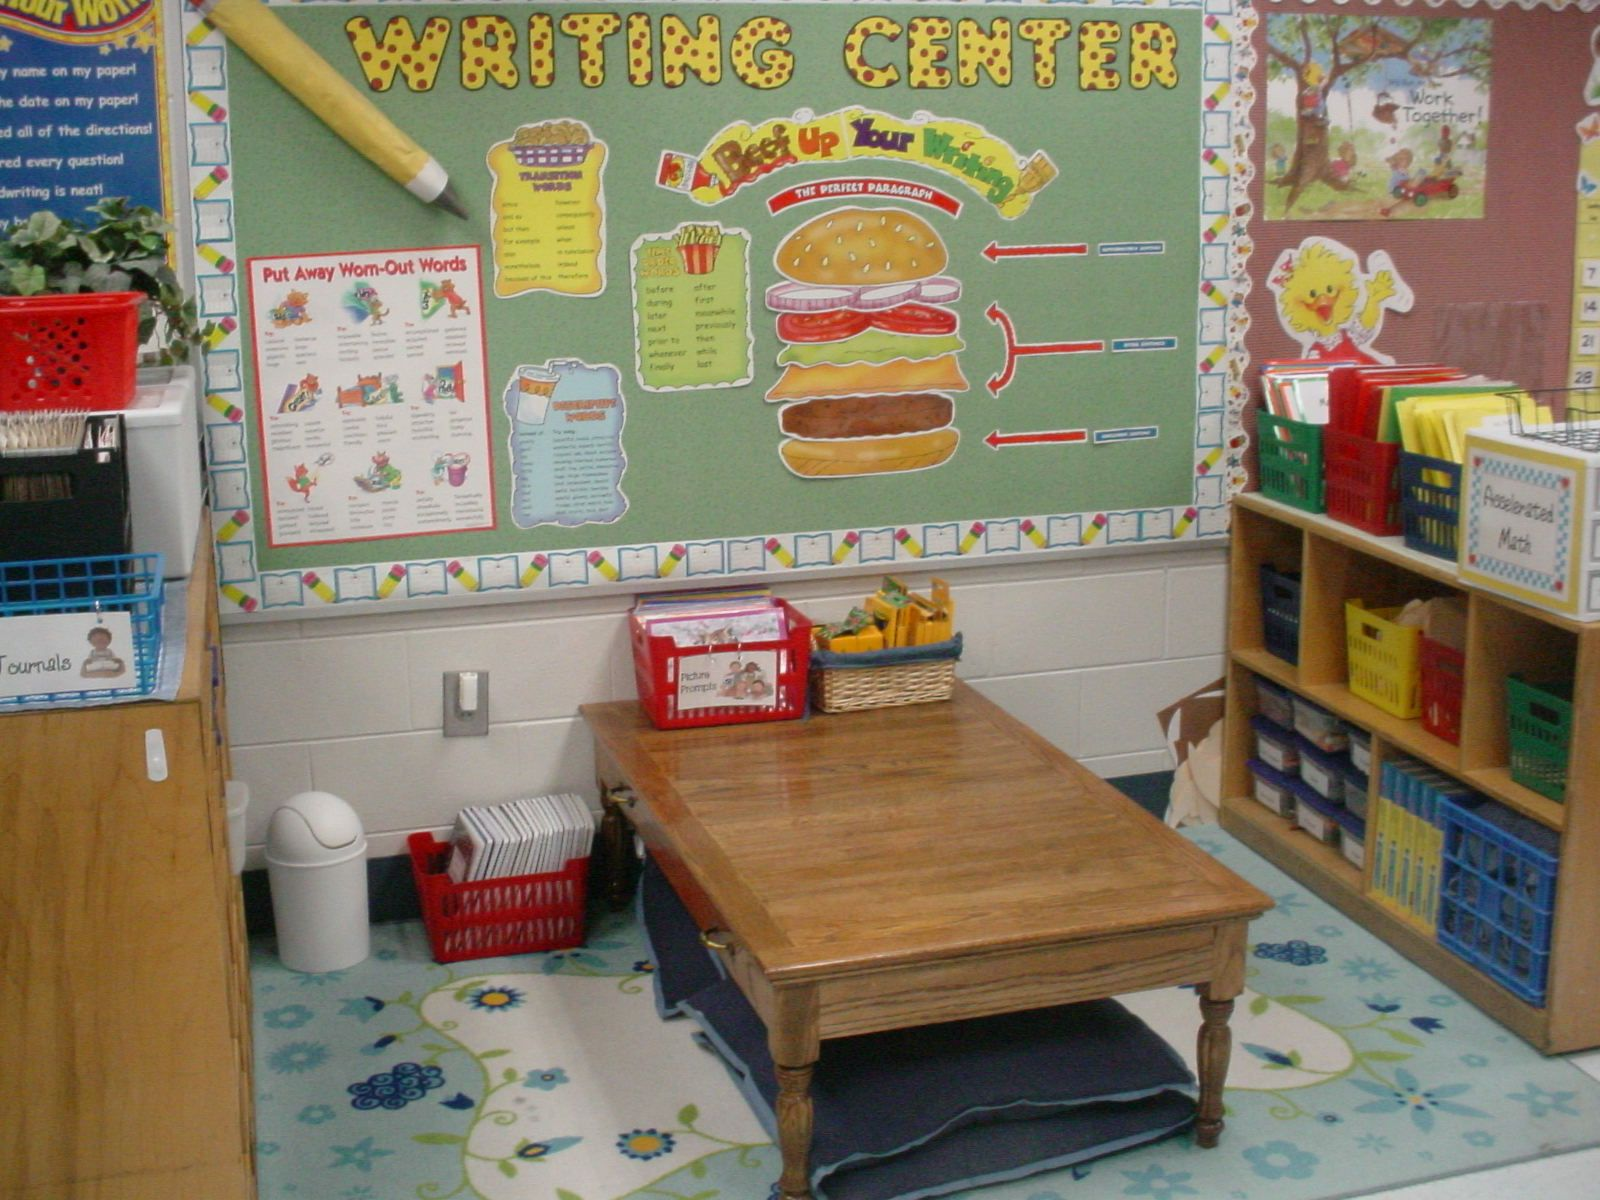 Create This Writing Center On A Much Smaller Scale For